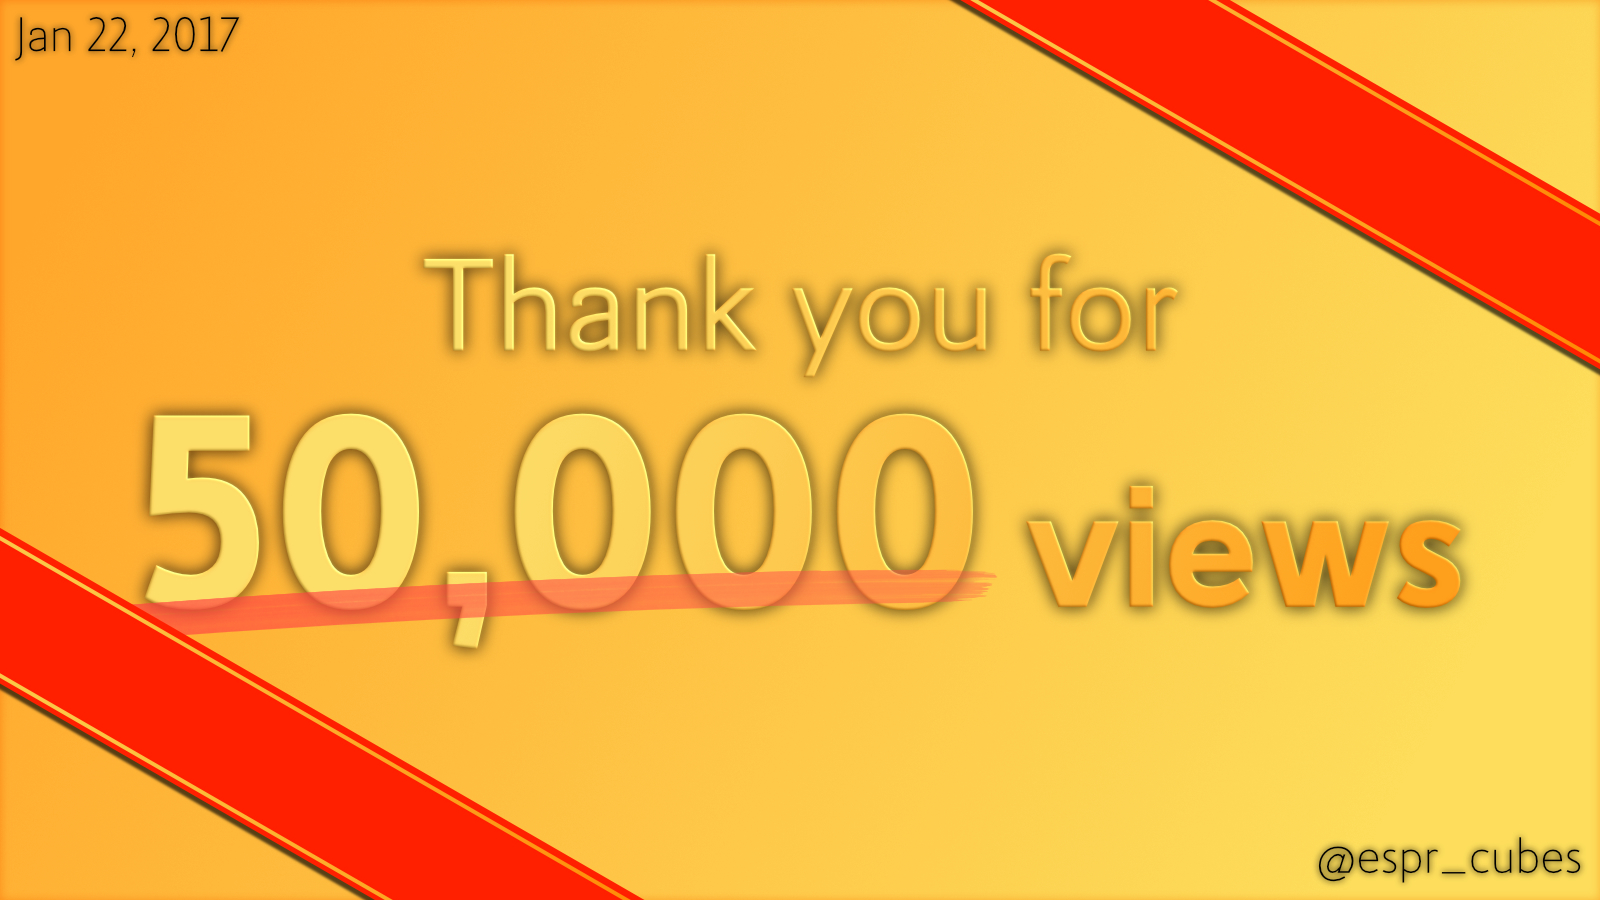 Thank you for 50k views